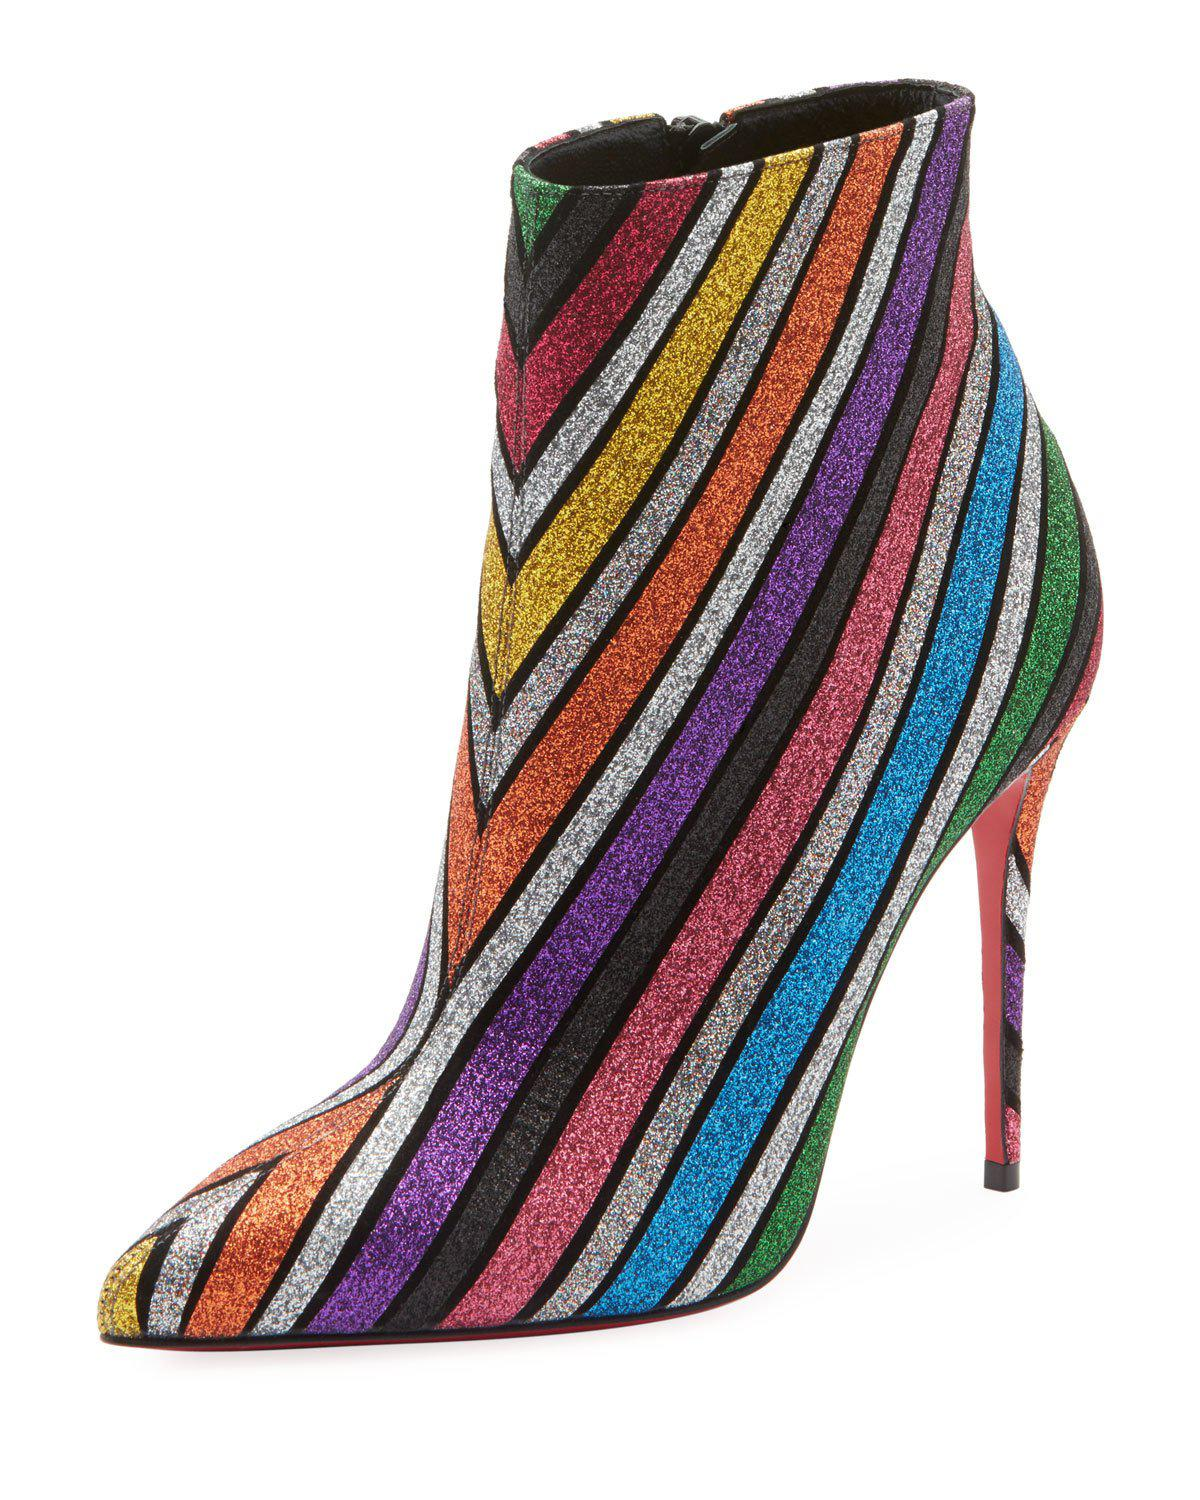 c7a959ab1e27 Christian Louboutin So Kate 100 Stripey Glitter Suede Red Sole Booties